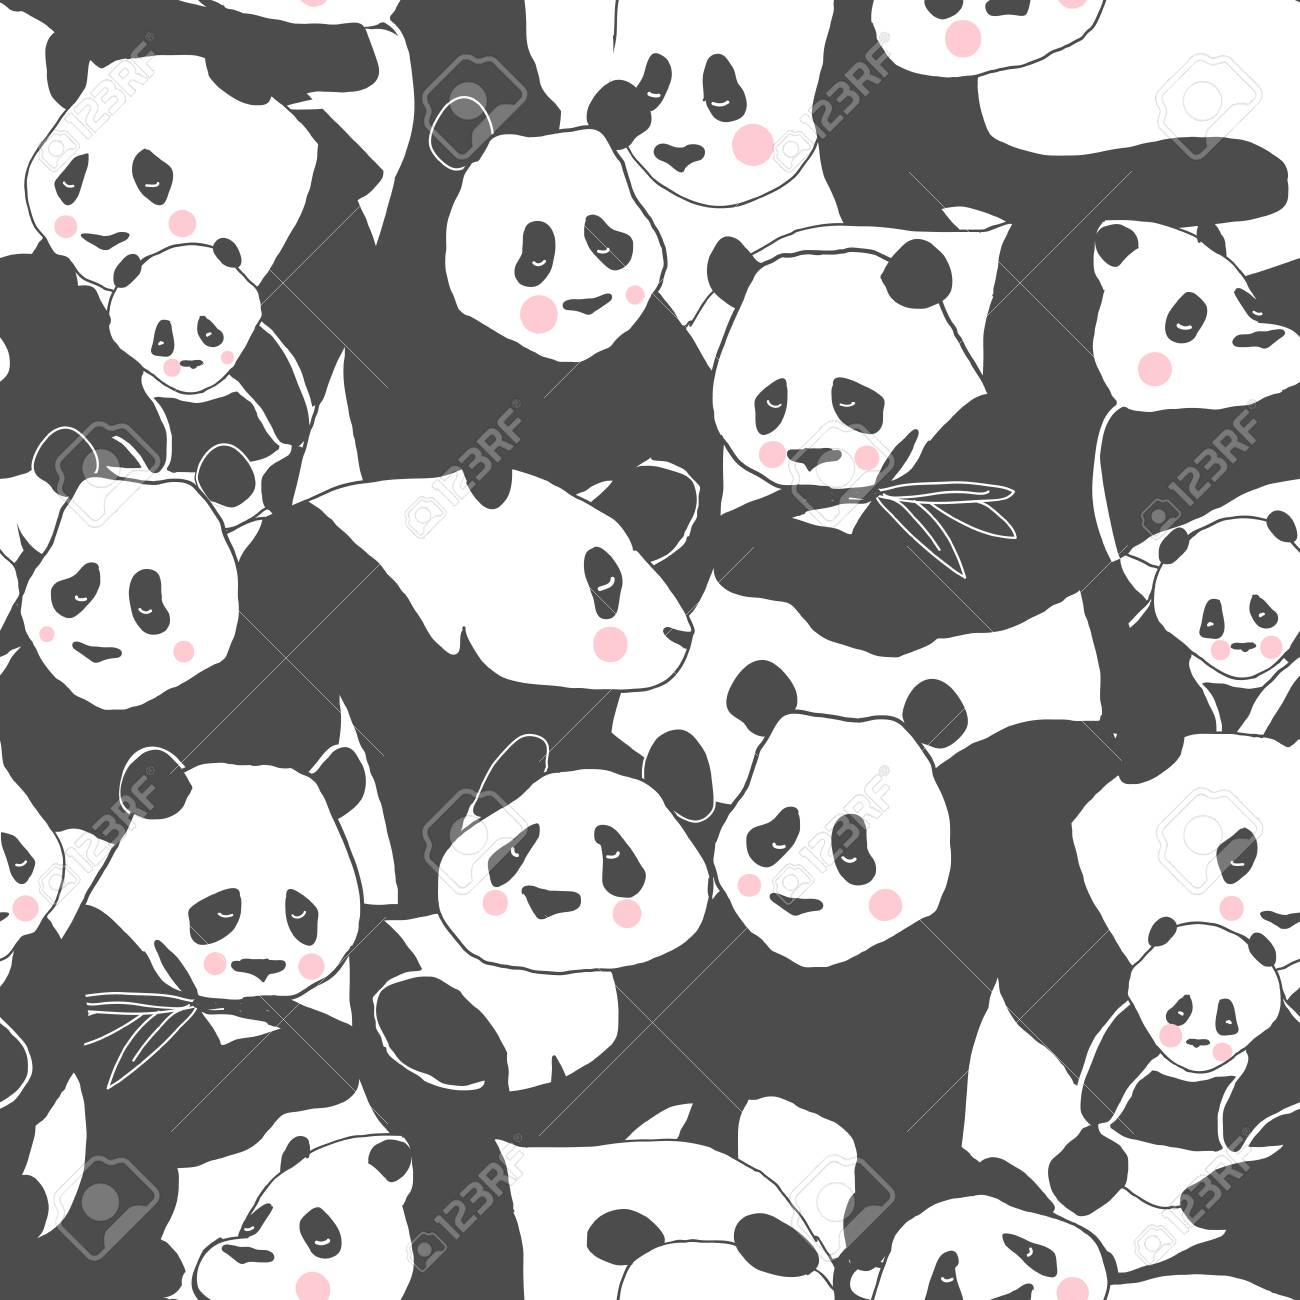 Cute Panda Bear Seamless Pattern Illustration For Textile Print